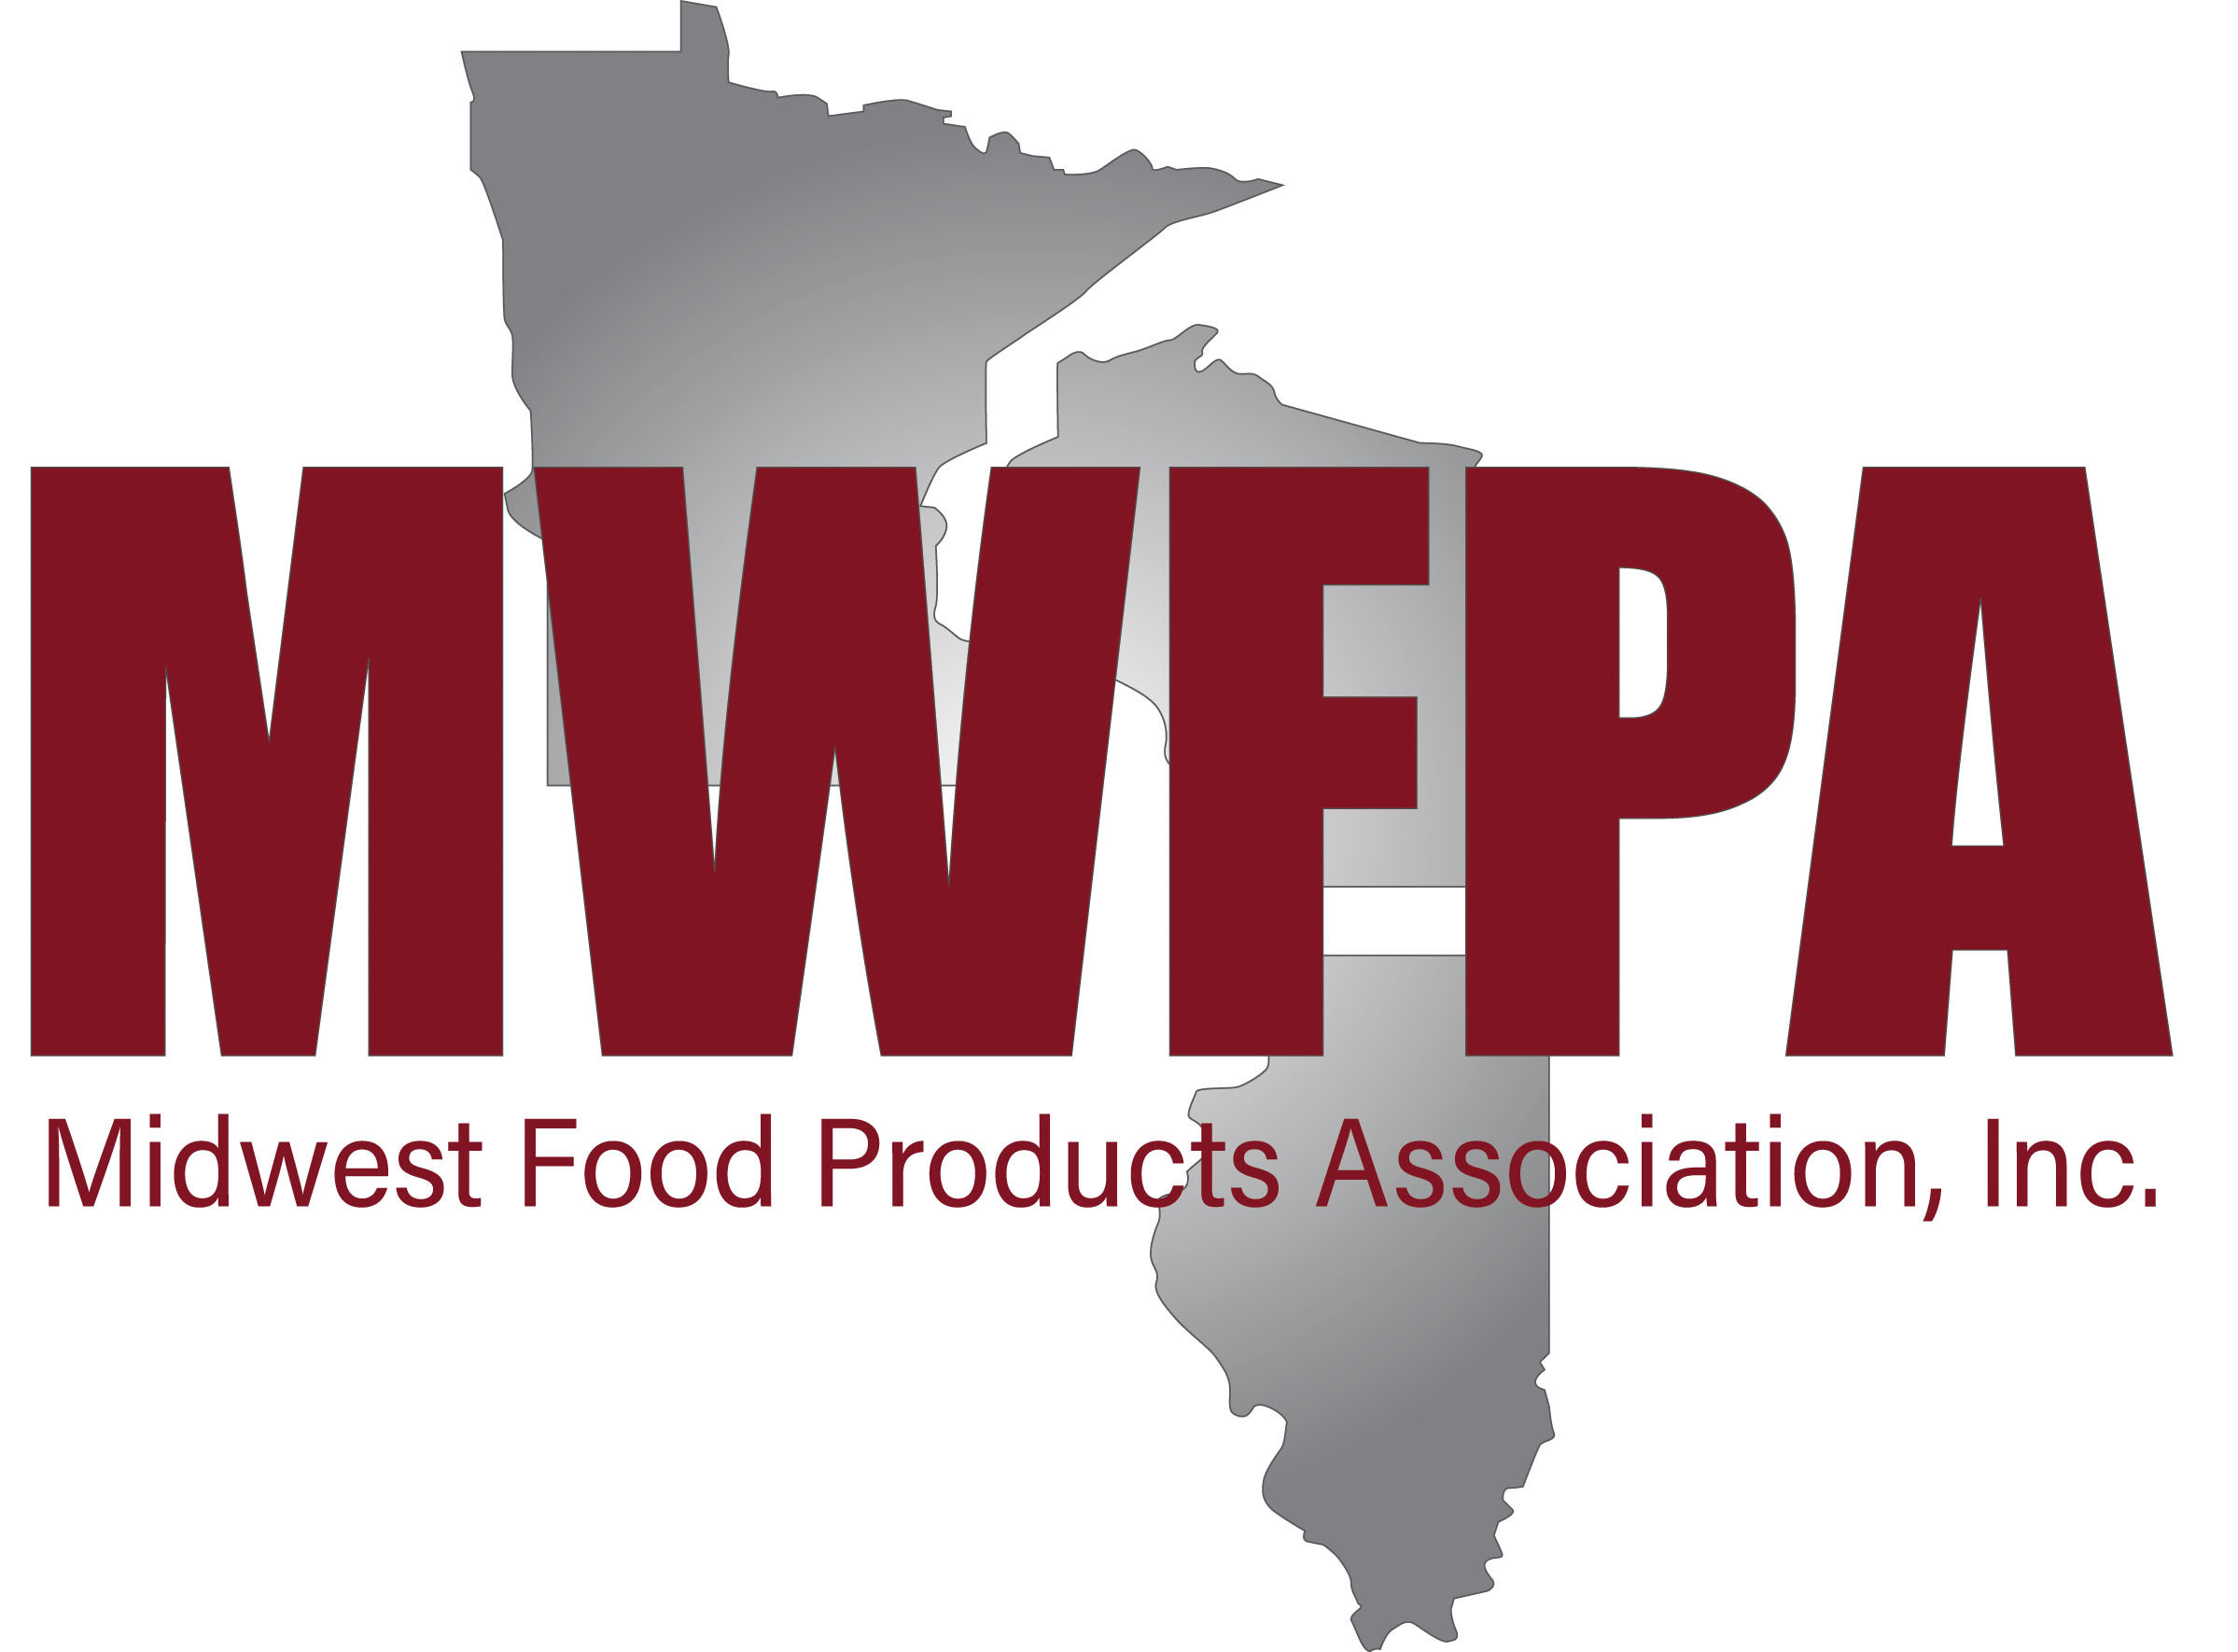 Midwest Food Products Association | MWFPA